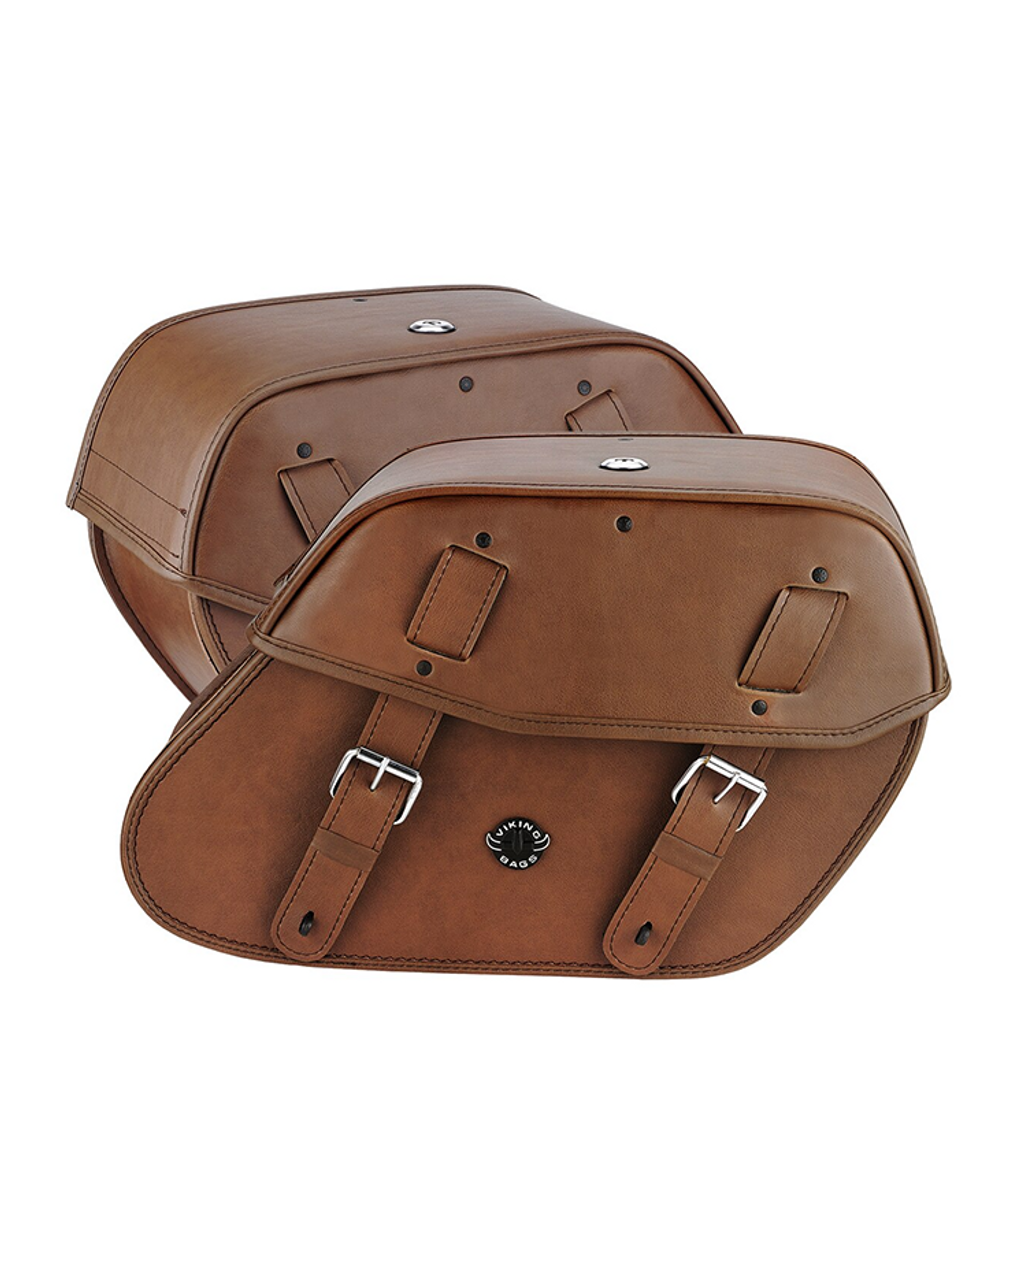 Viking Odin Brown Large Motorcycle Saddlebags For Harley Softail Low Rider Both Bags View